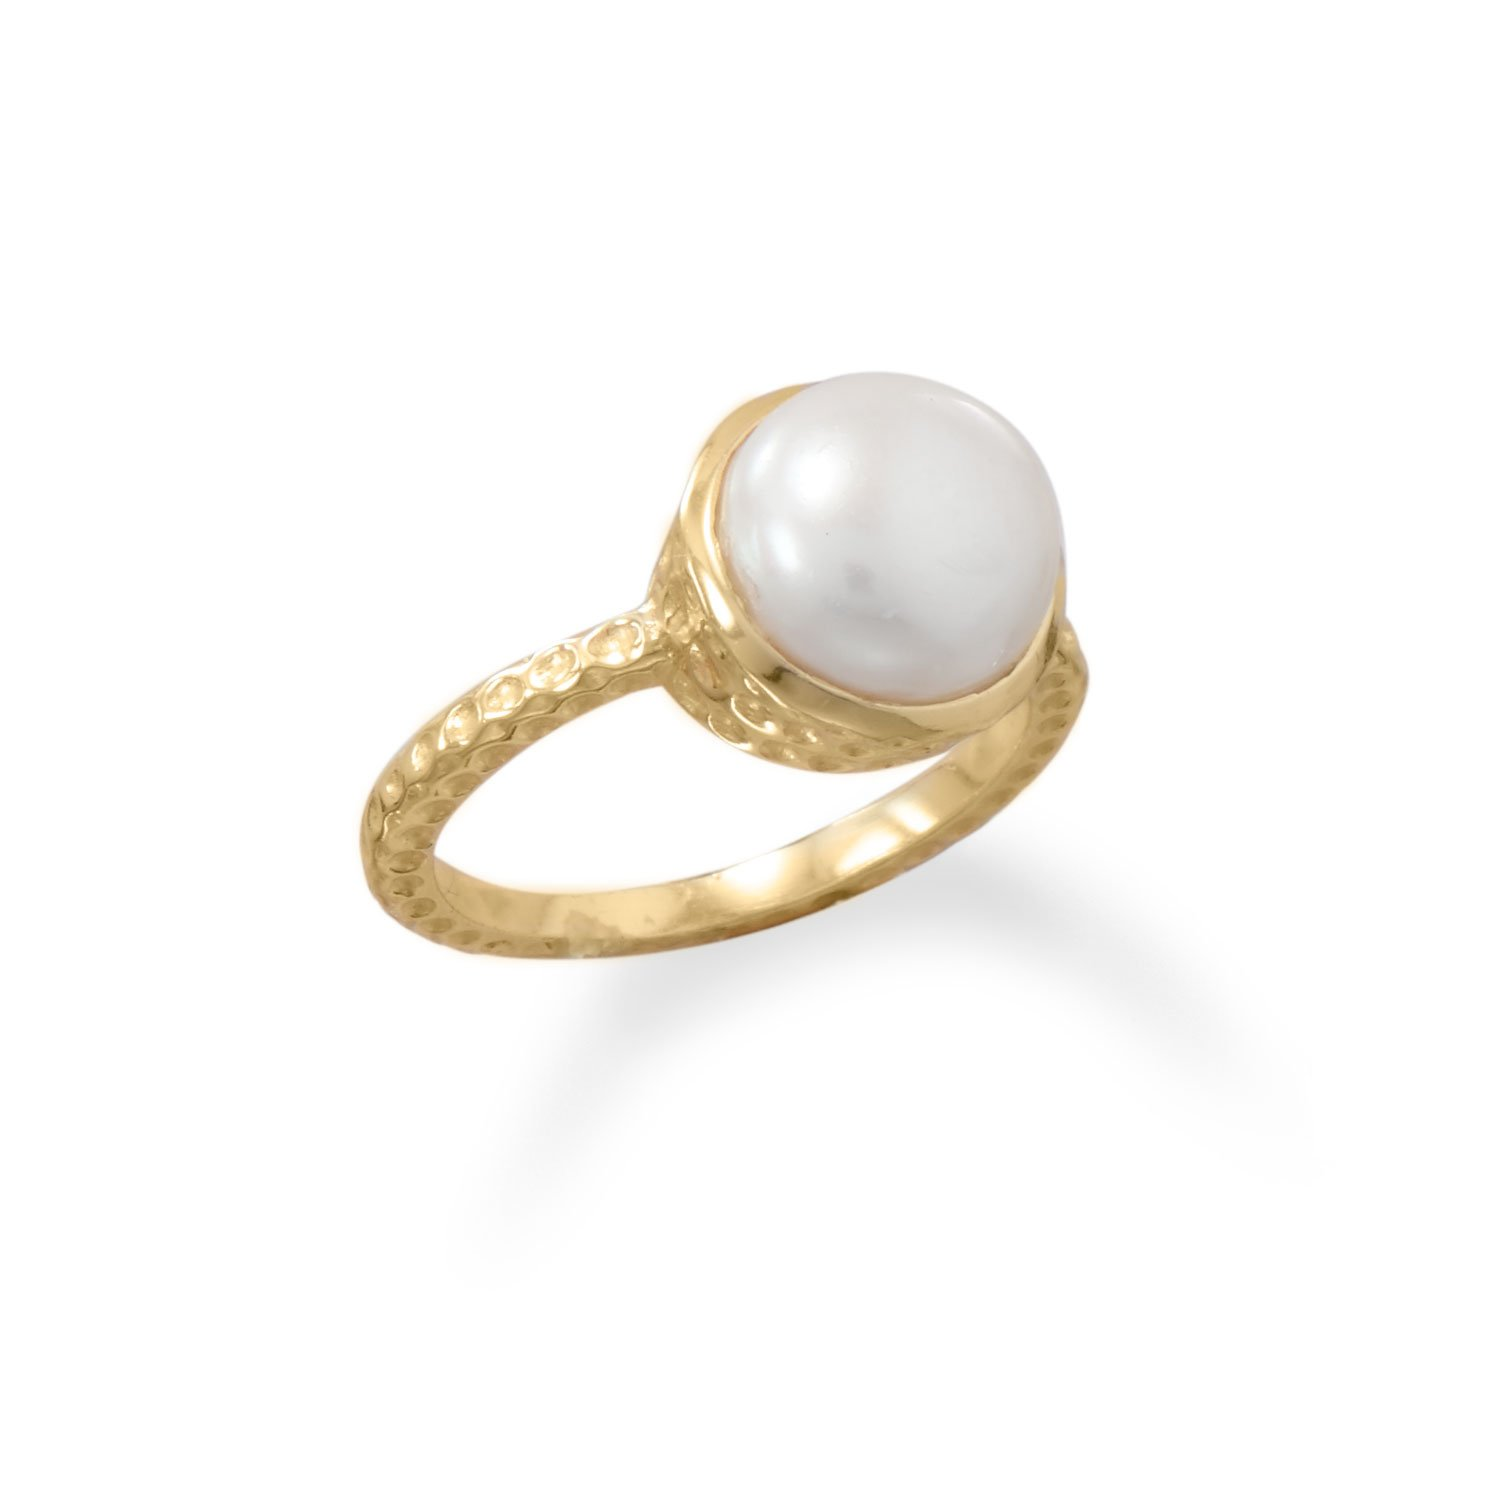 925 sterling silver ring with freshwater pearl ring freshwater pearl ring size 6.25 us genuine cultured freshwater pearl ring with yellow gold plated accent enchanting 12 mm round pearl,